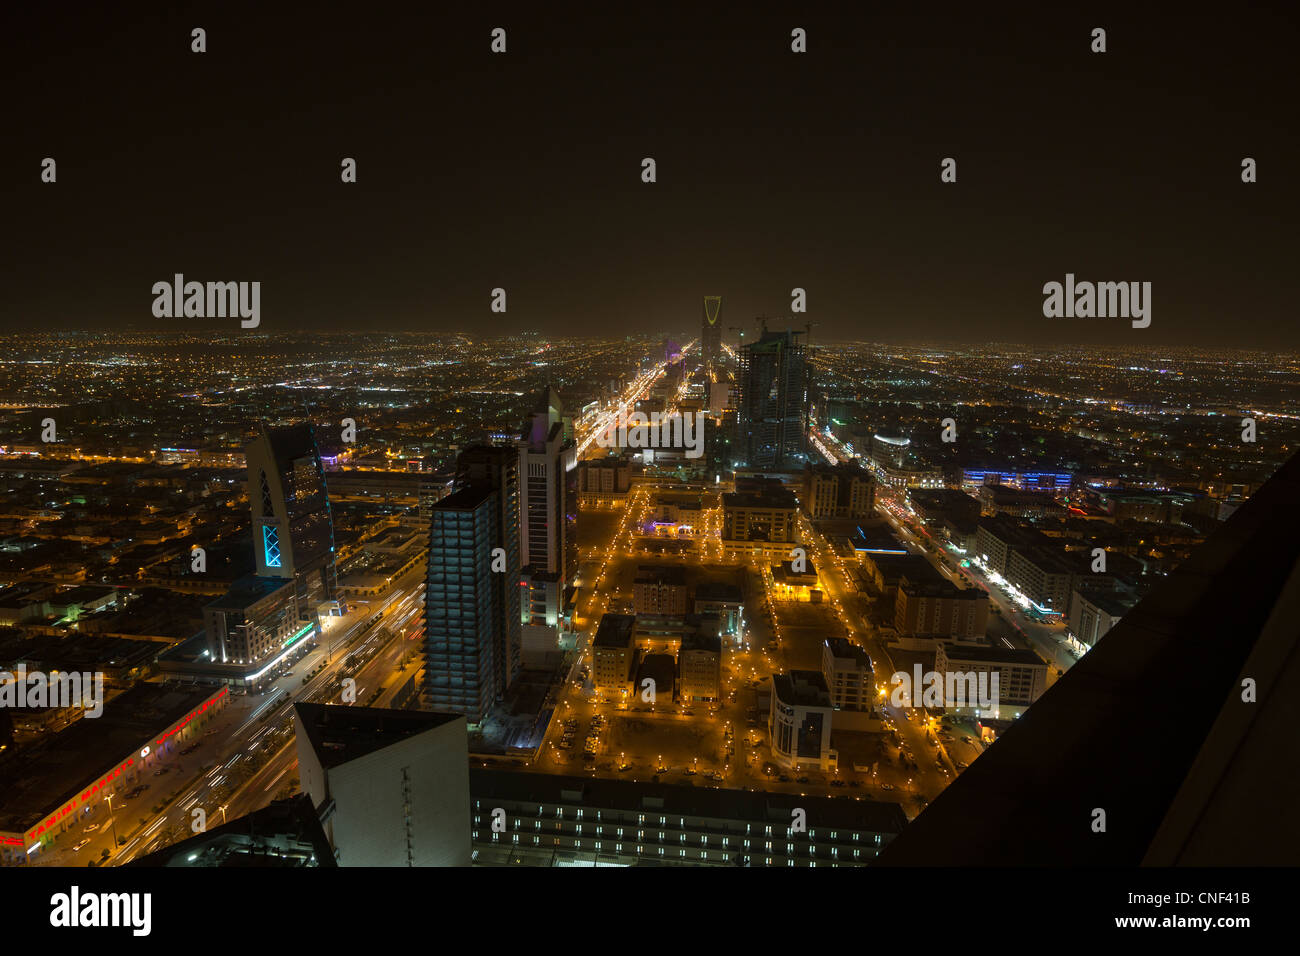 Avis de Riyadh, Arabie Saoudite Photo Stock